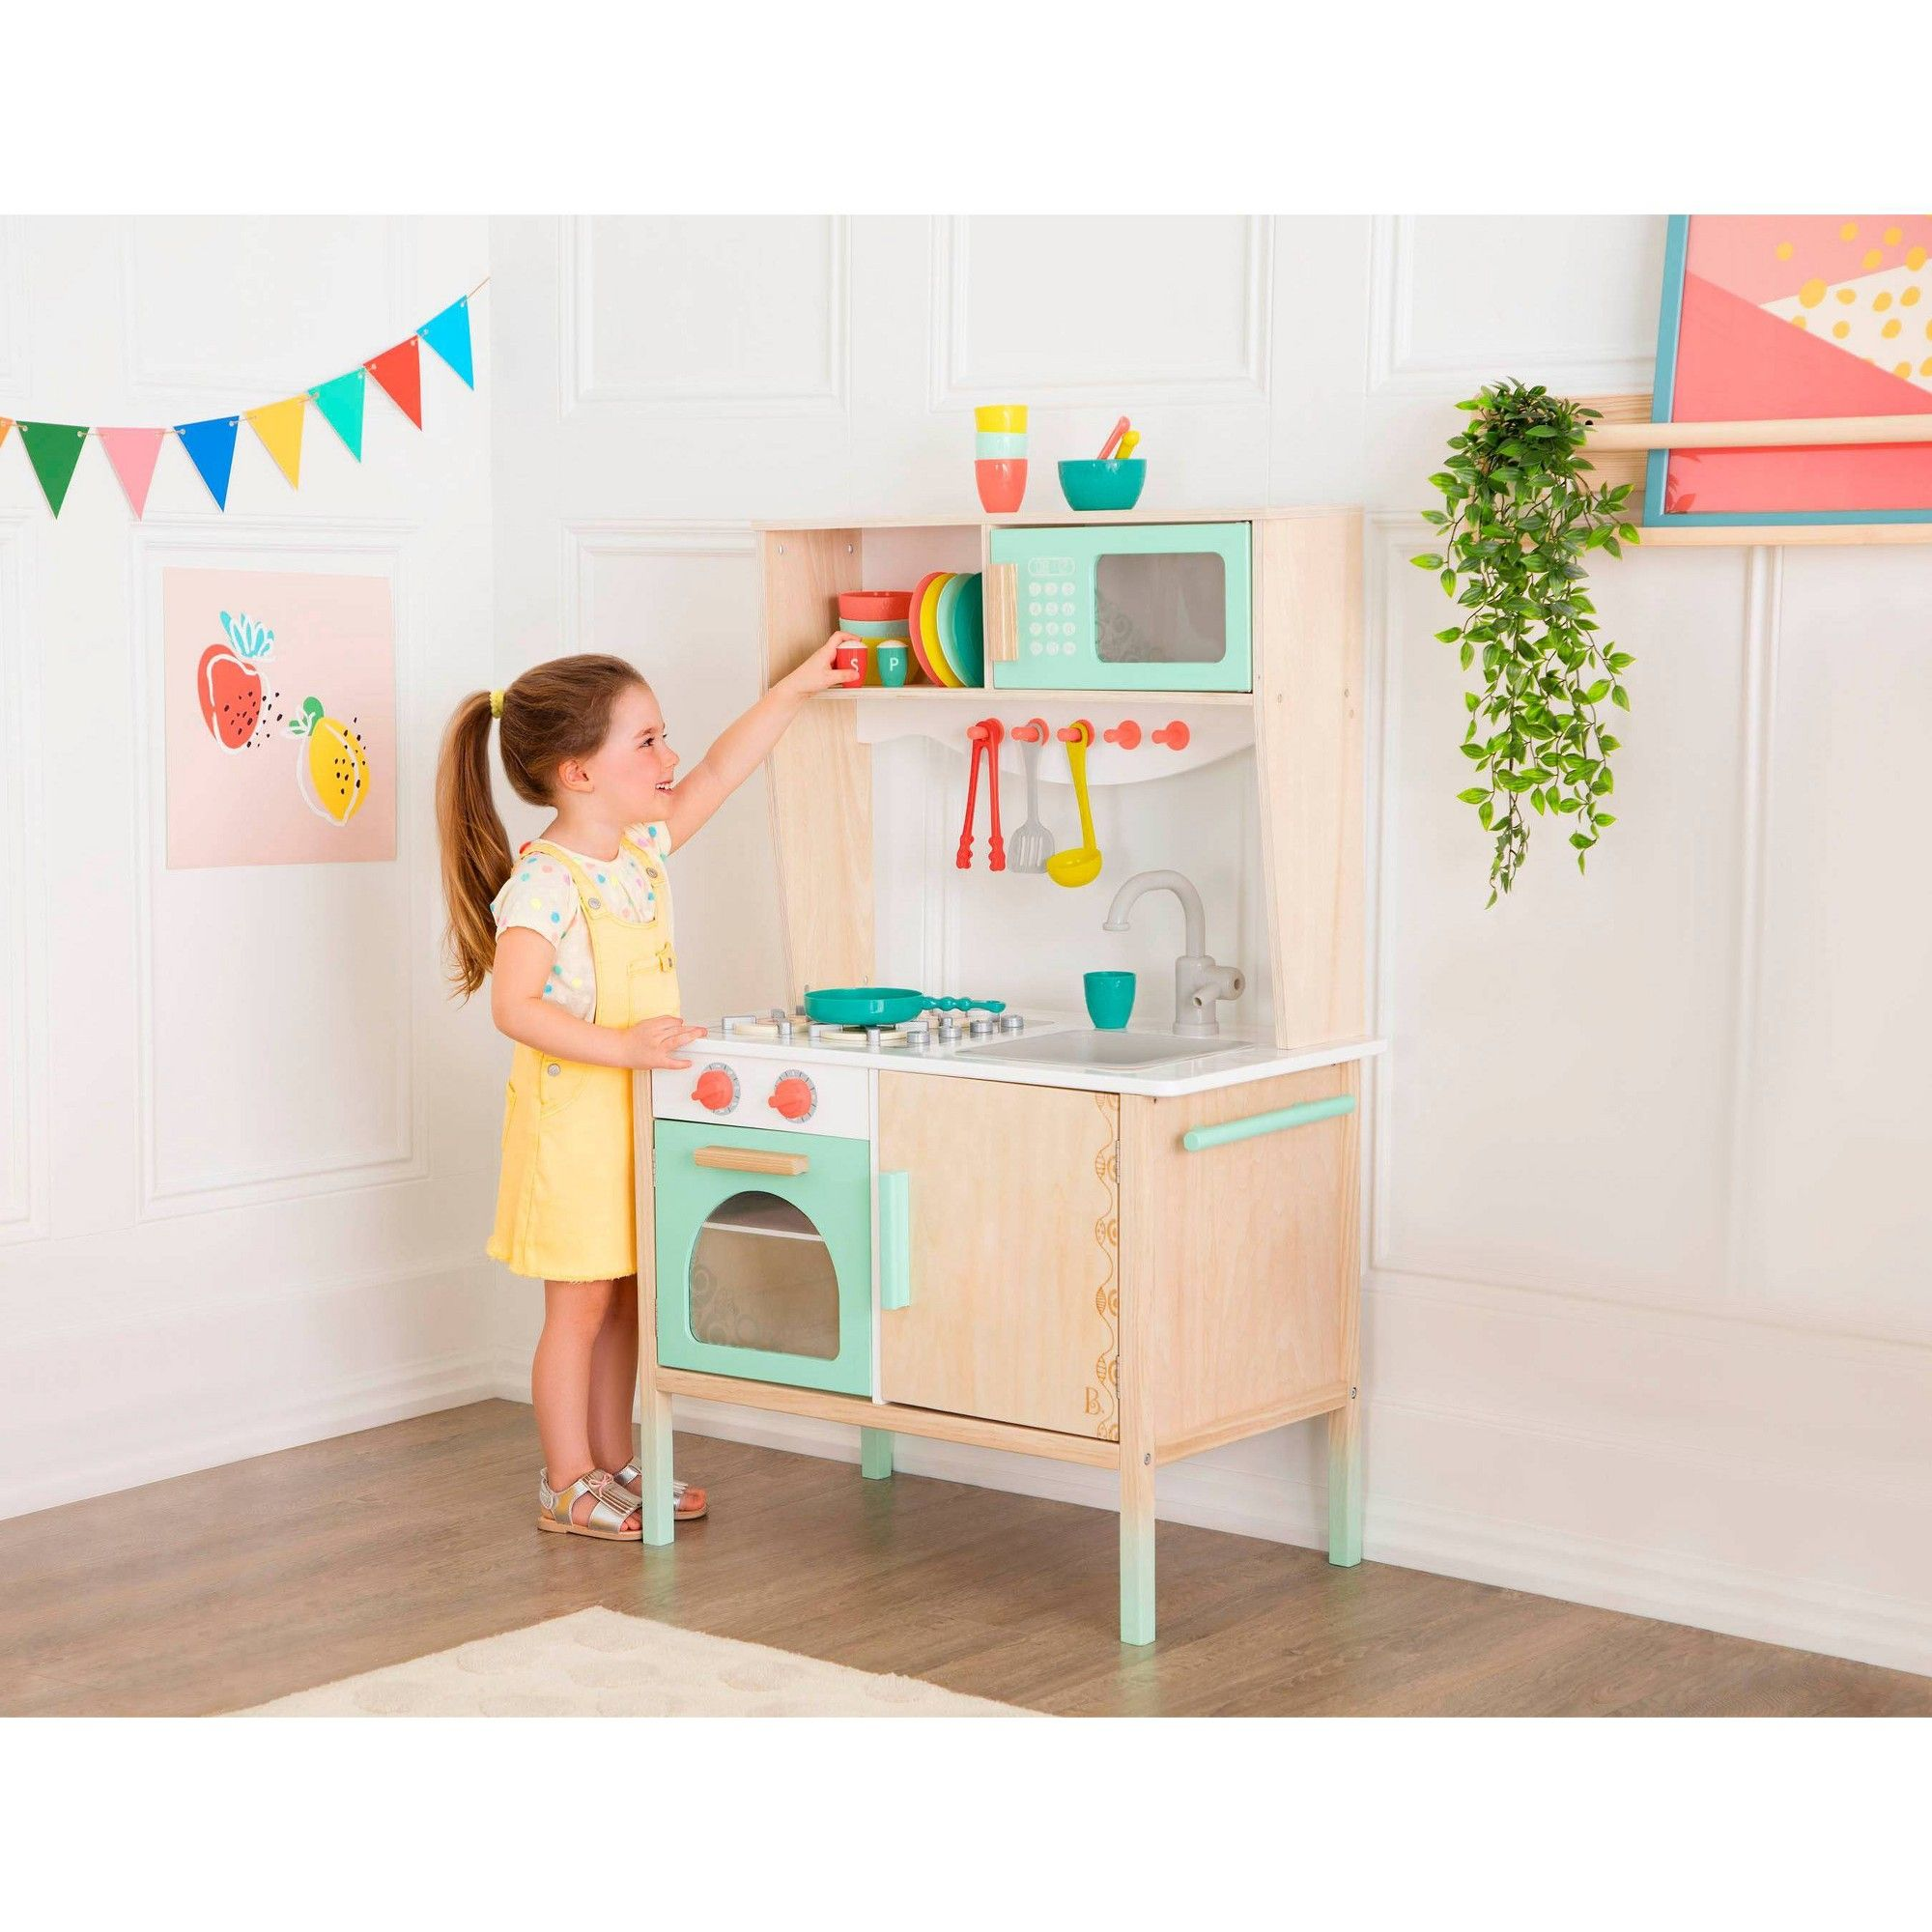 B Toys Wooden Play Kitchen And Accessories Wooden Play Kitchen